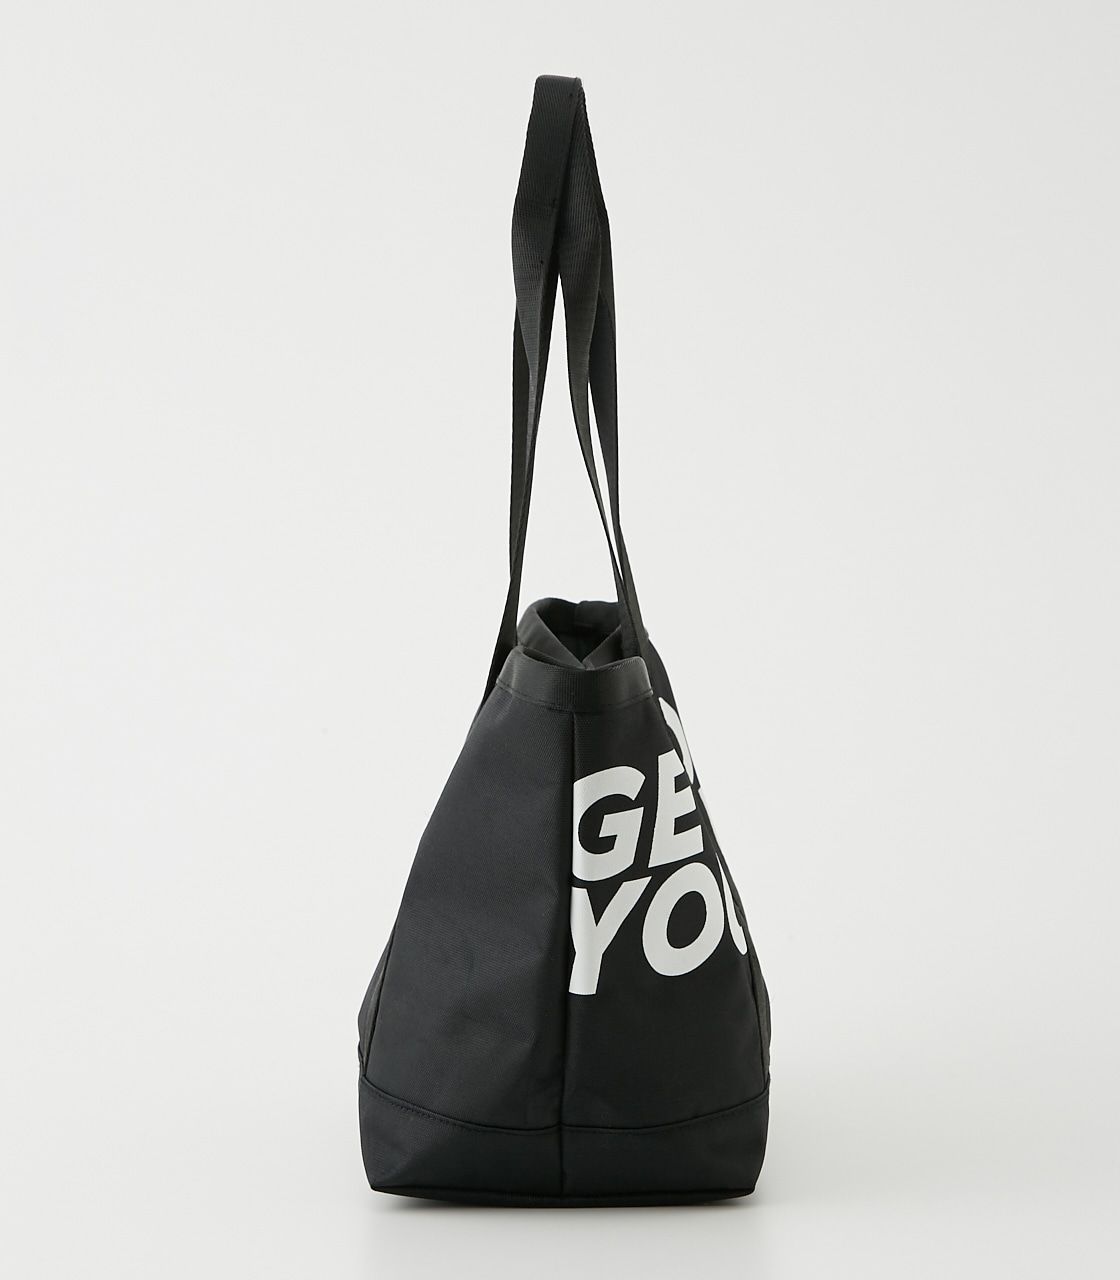 【AZUL BY MOUSSY】CLUBAZUL GET BEYOND TOTE BAG 詳細画像 BLK 2